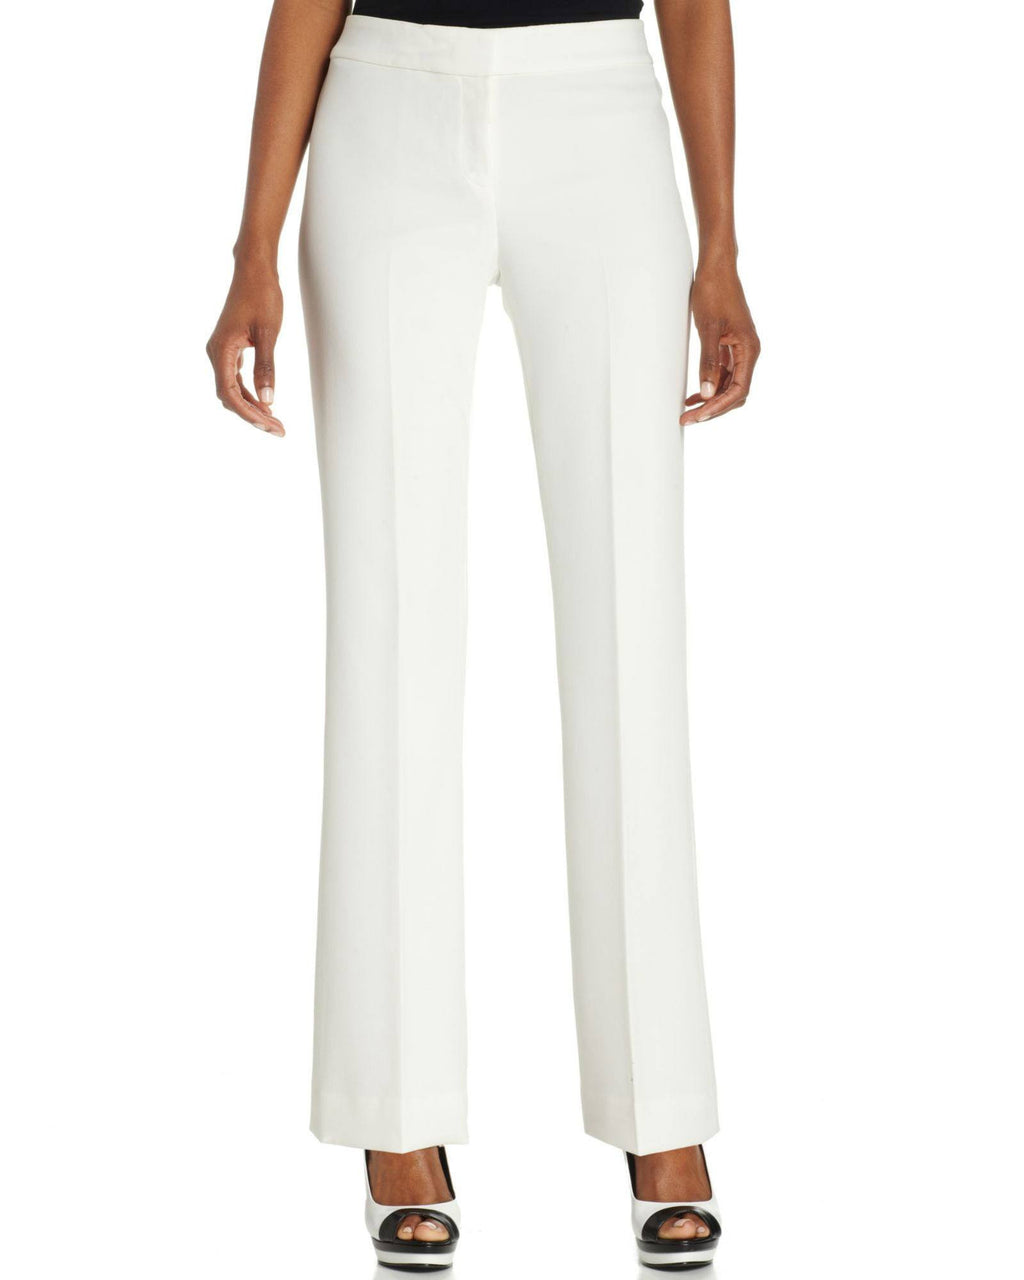 Anne Klein White Petite Stretch Dress Pants-ANNE KLEIN-Fashionbarn shop